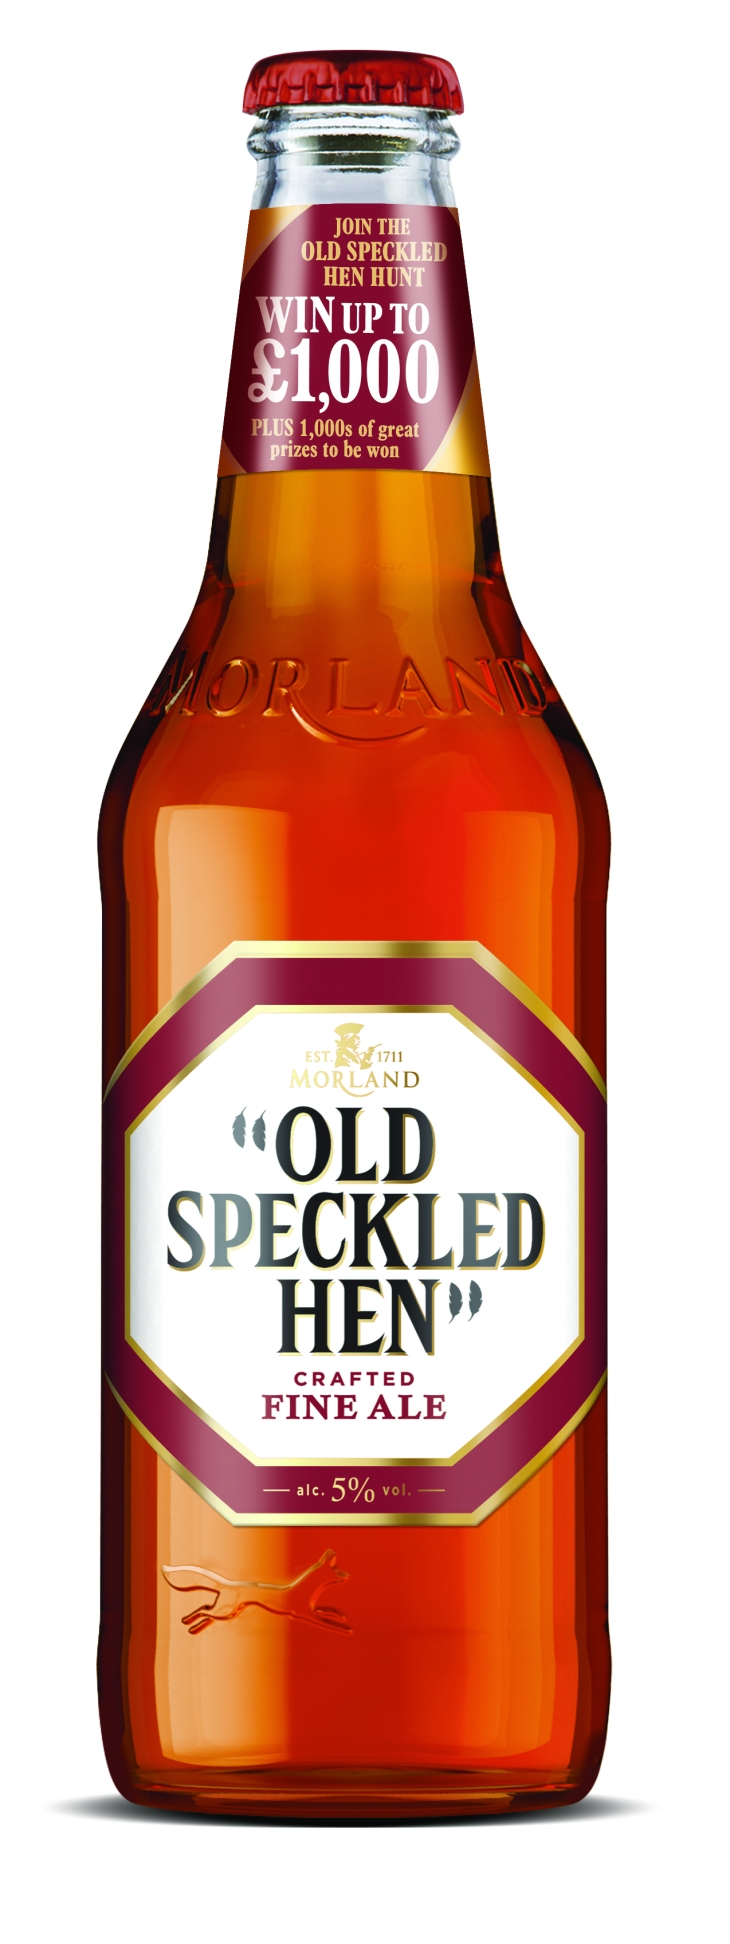 George Hotel Speckled Hen